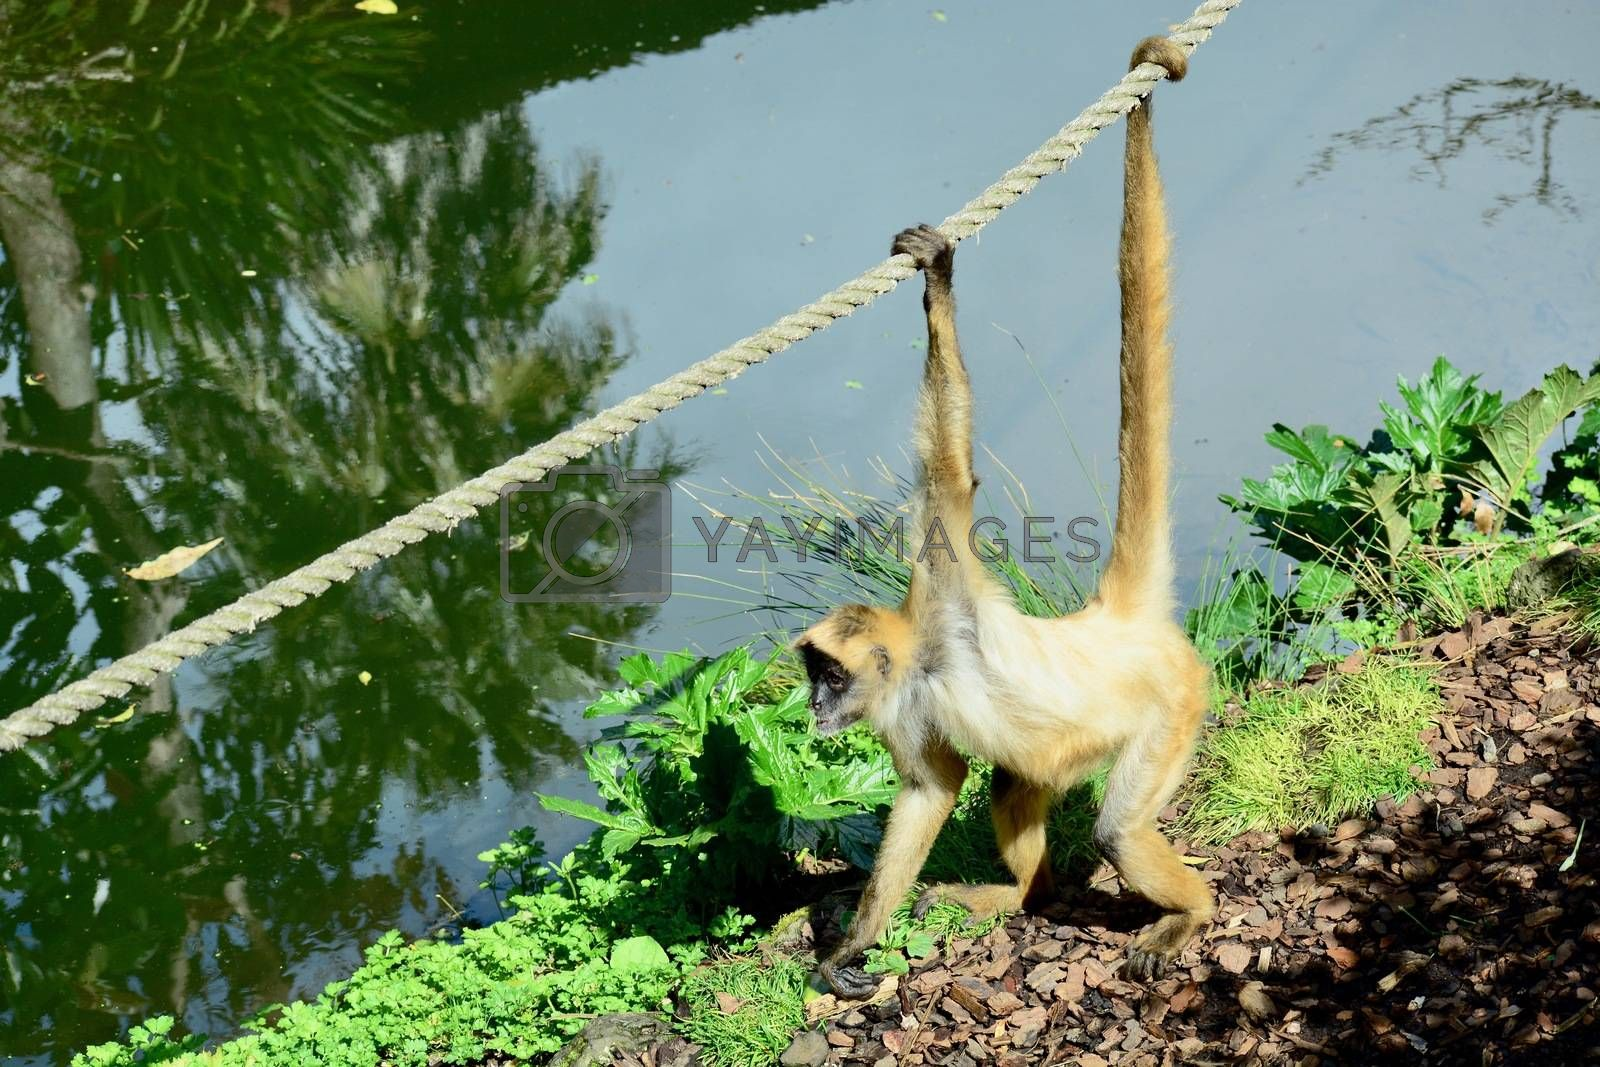 Spider monkeys live in the upper layers of the rainforest, and forage in the high canopy